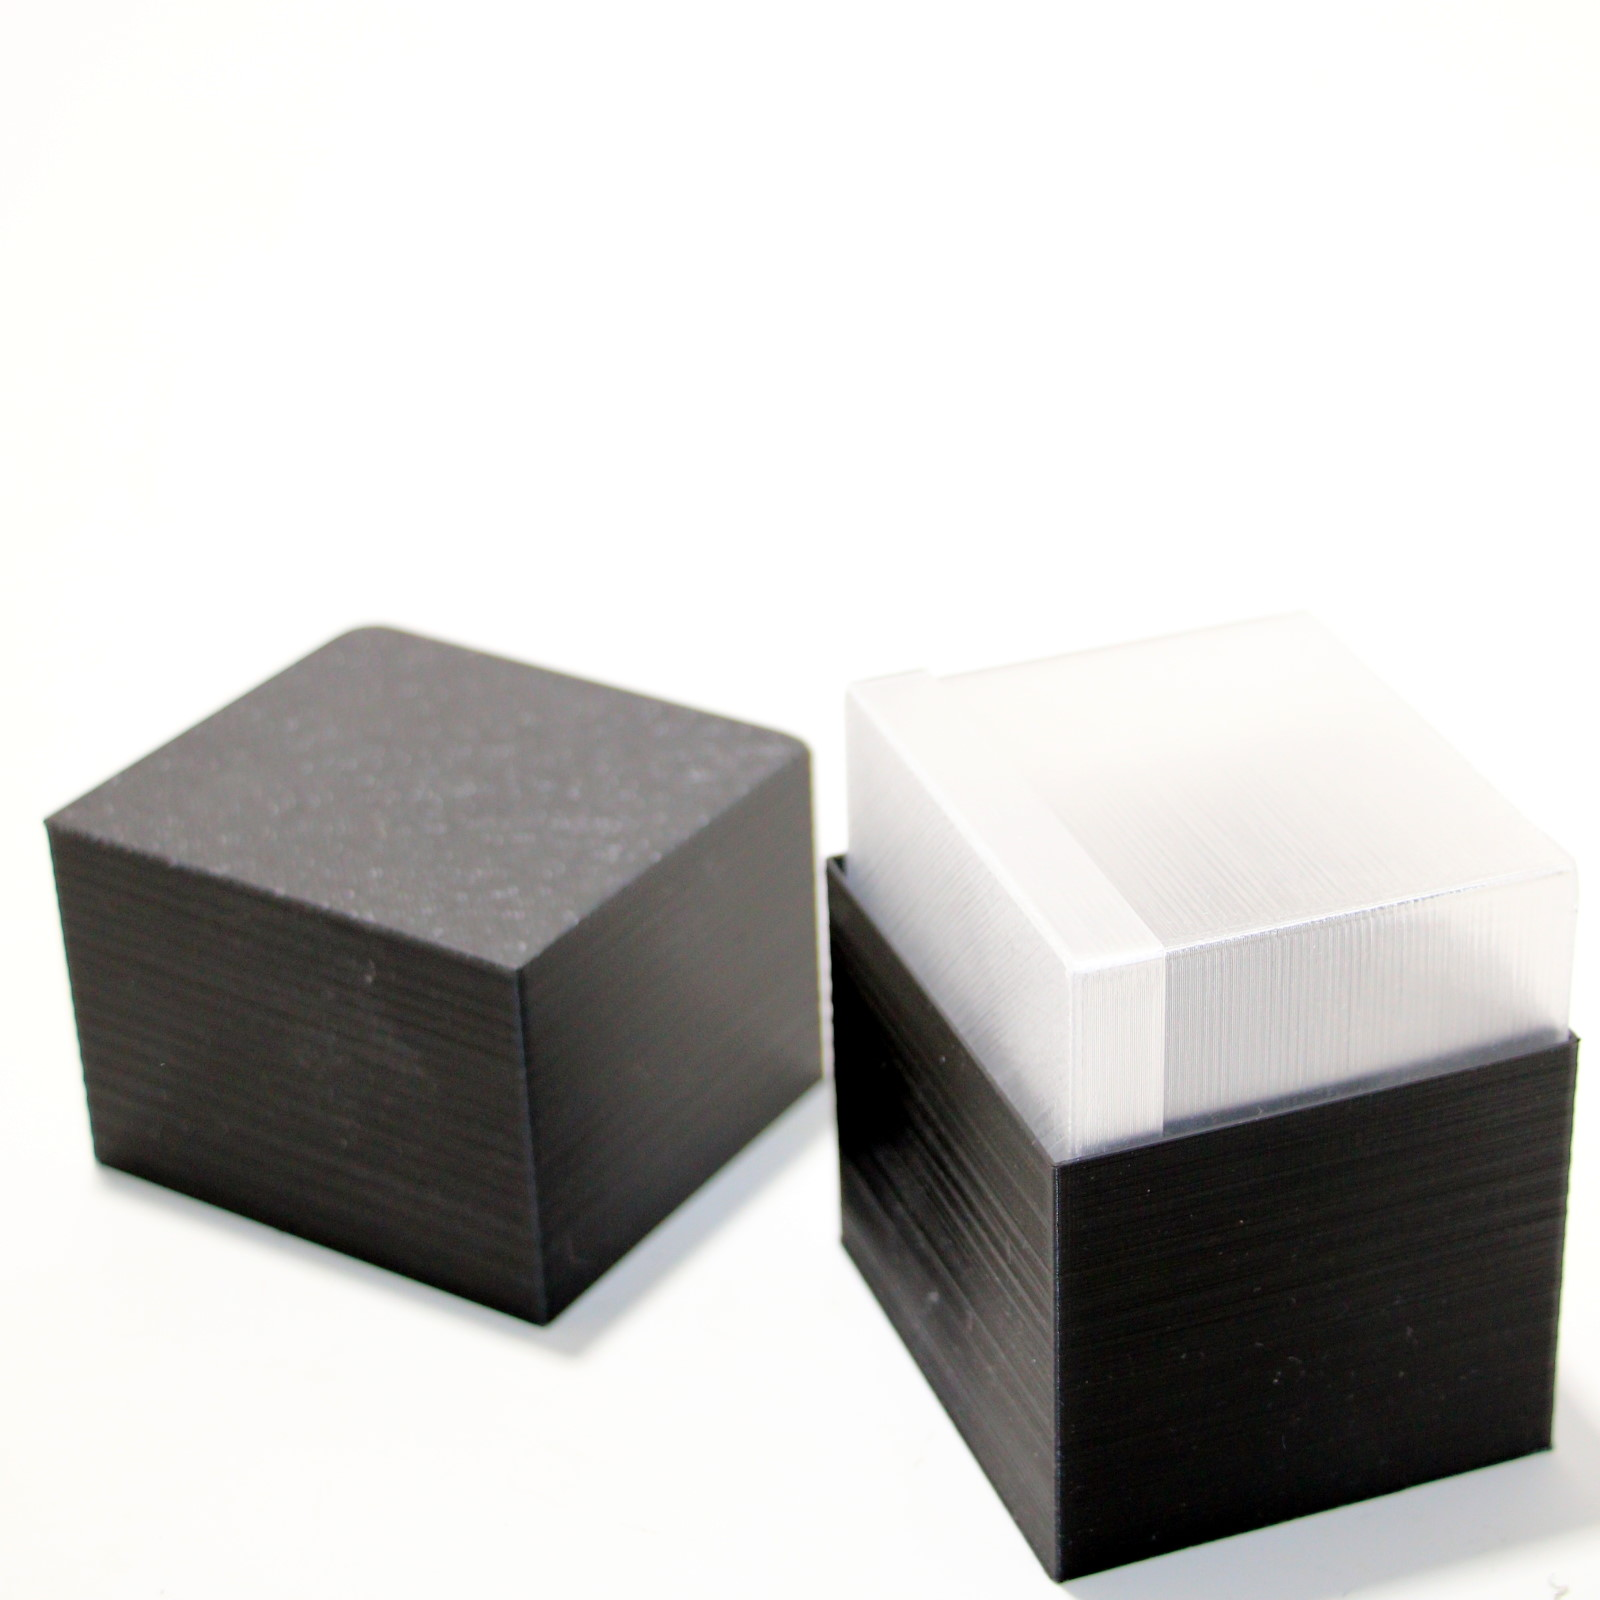 Gozinta Boxes Revisted by Chris Wasshuber, Lubor Fiedler